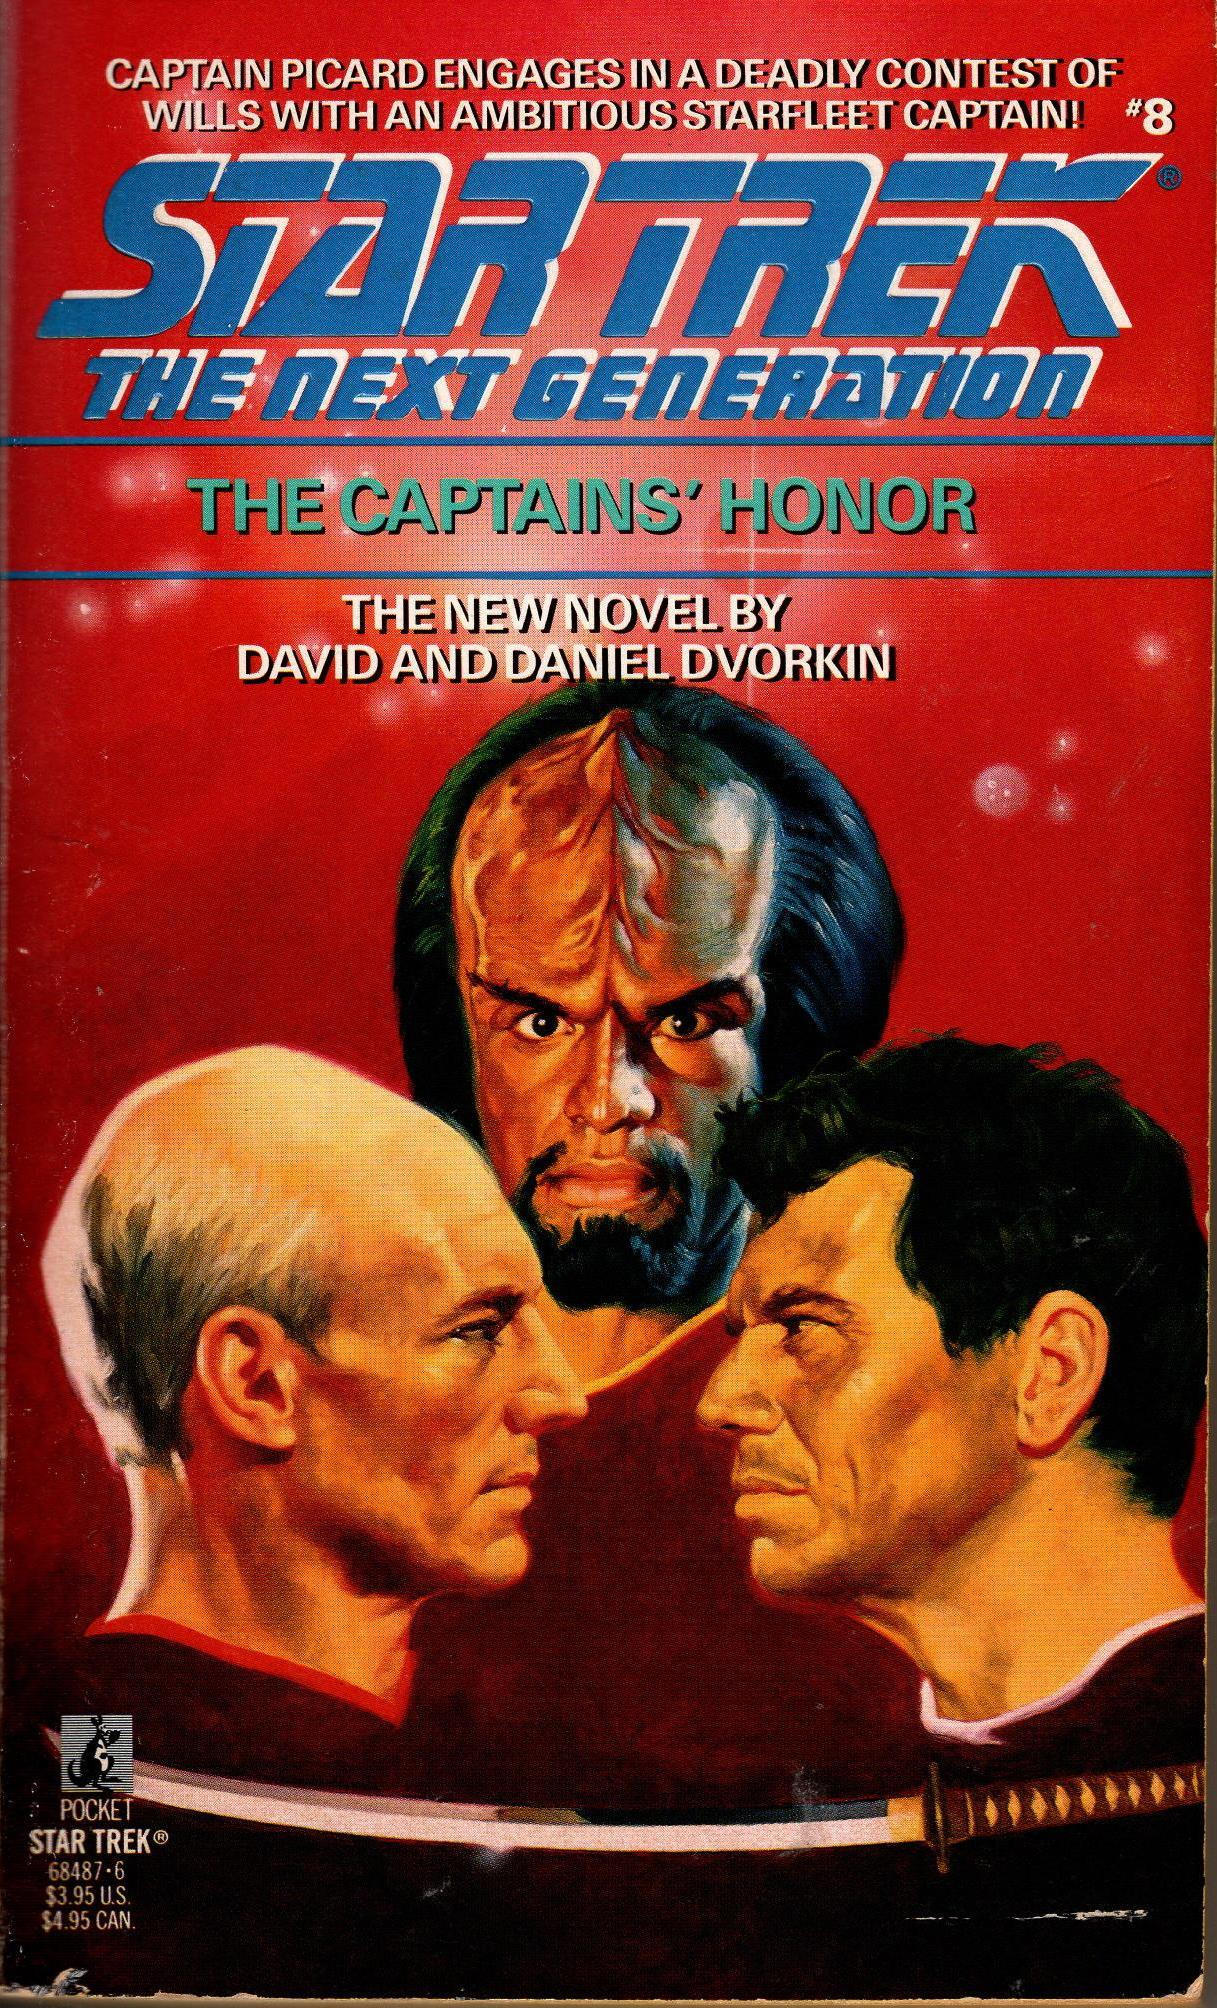 Image for STNG: CAPTAINS' HONOR, THE